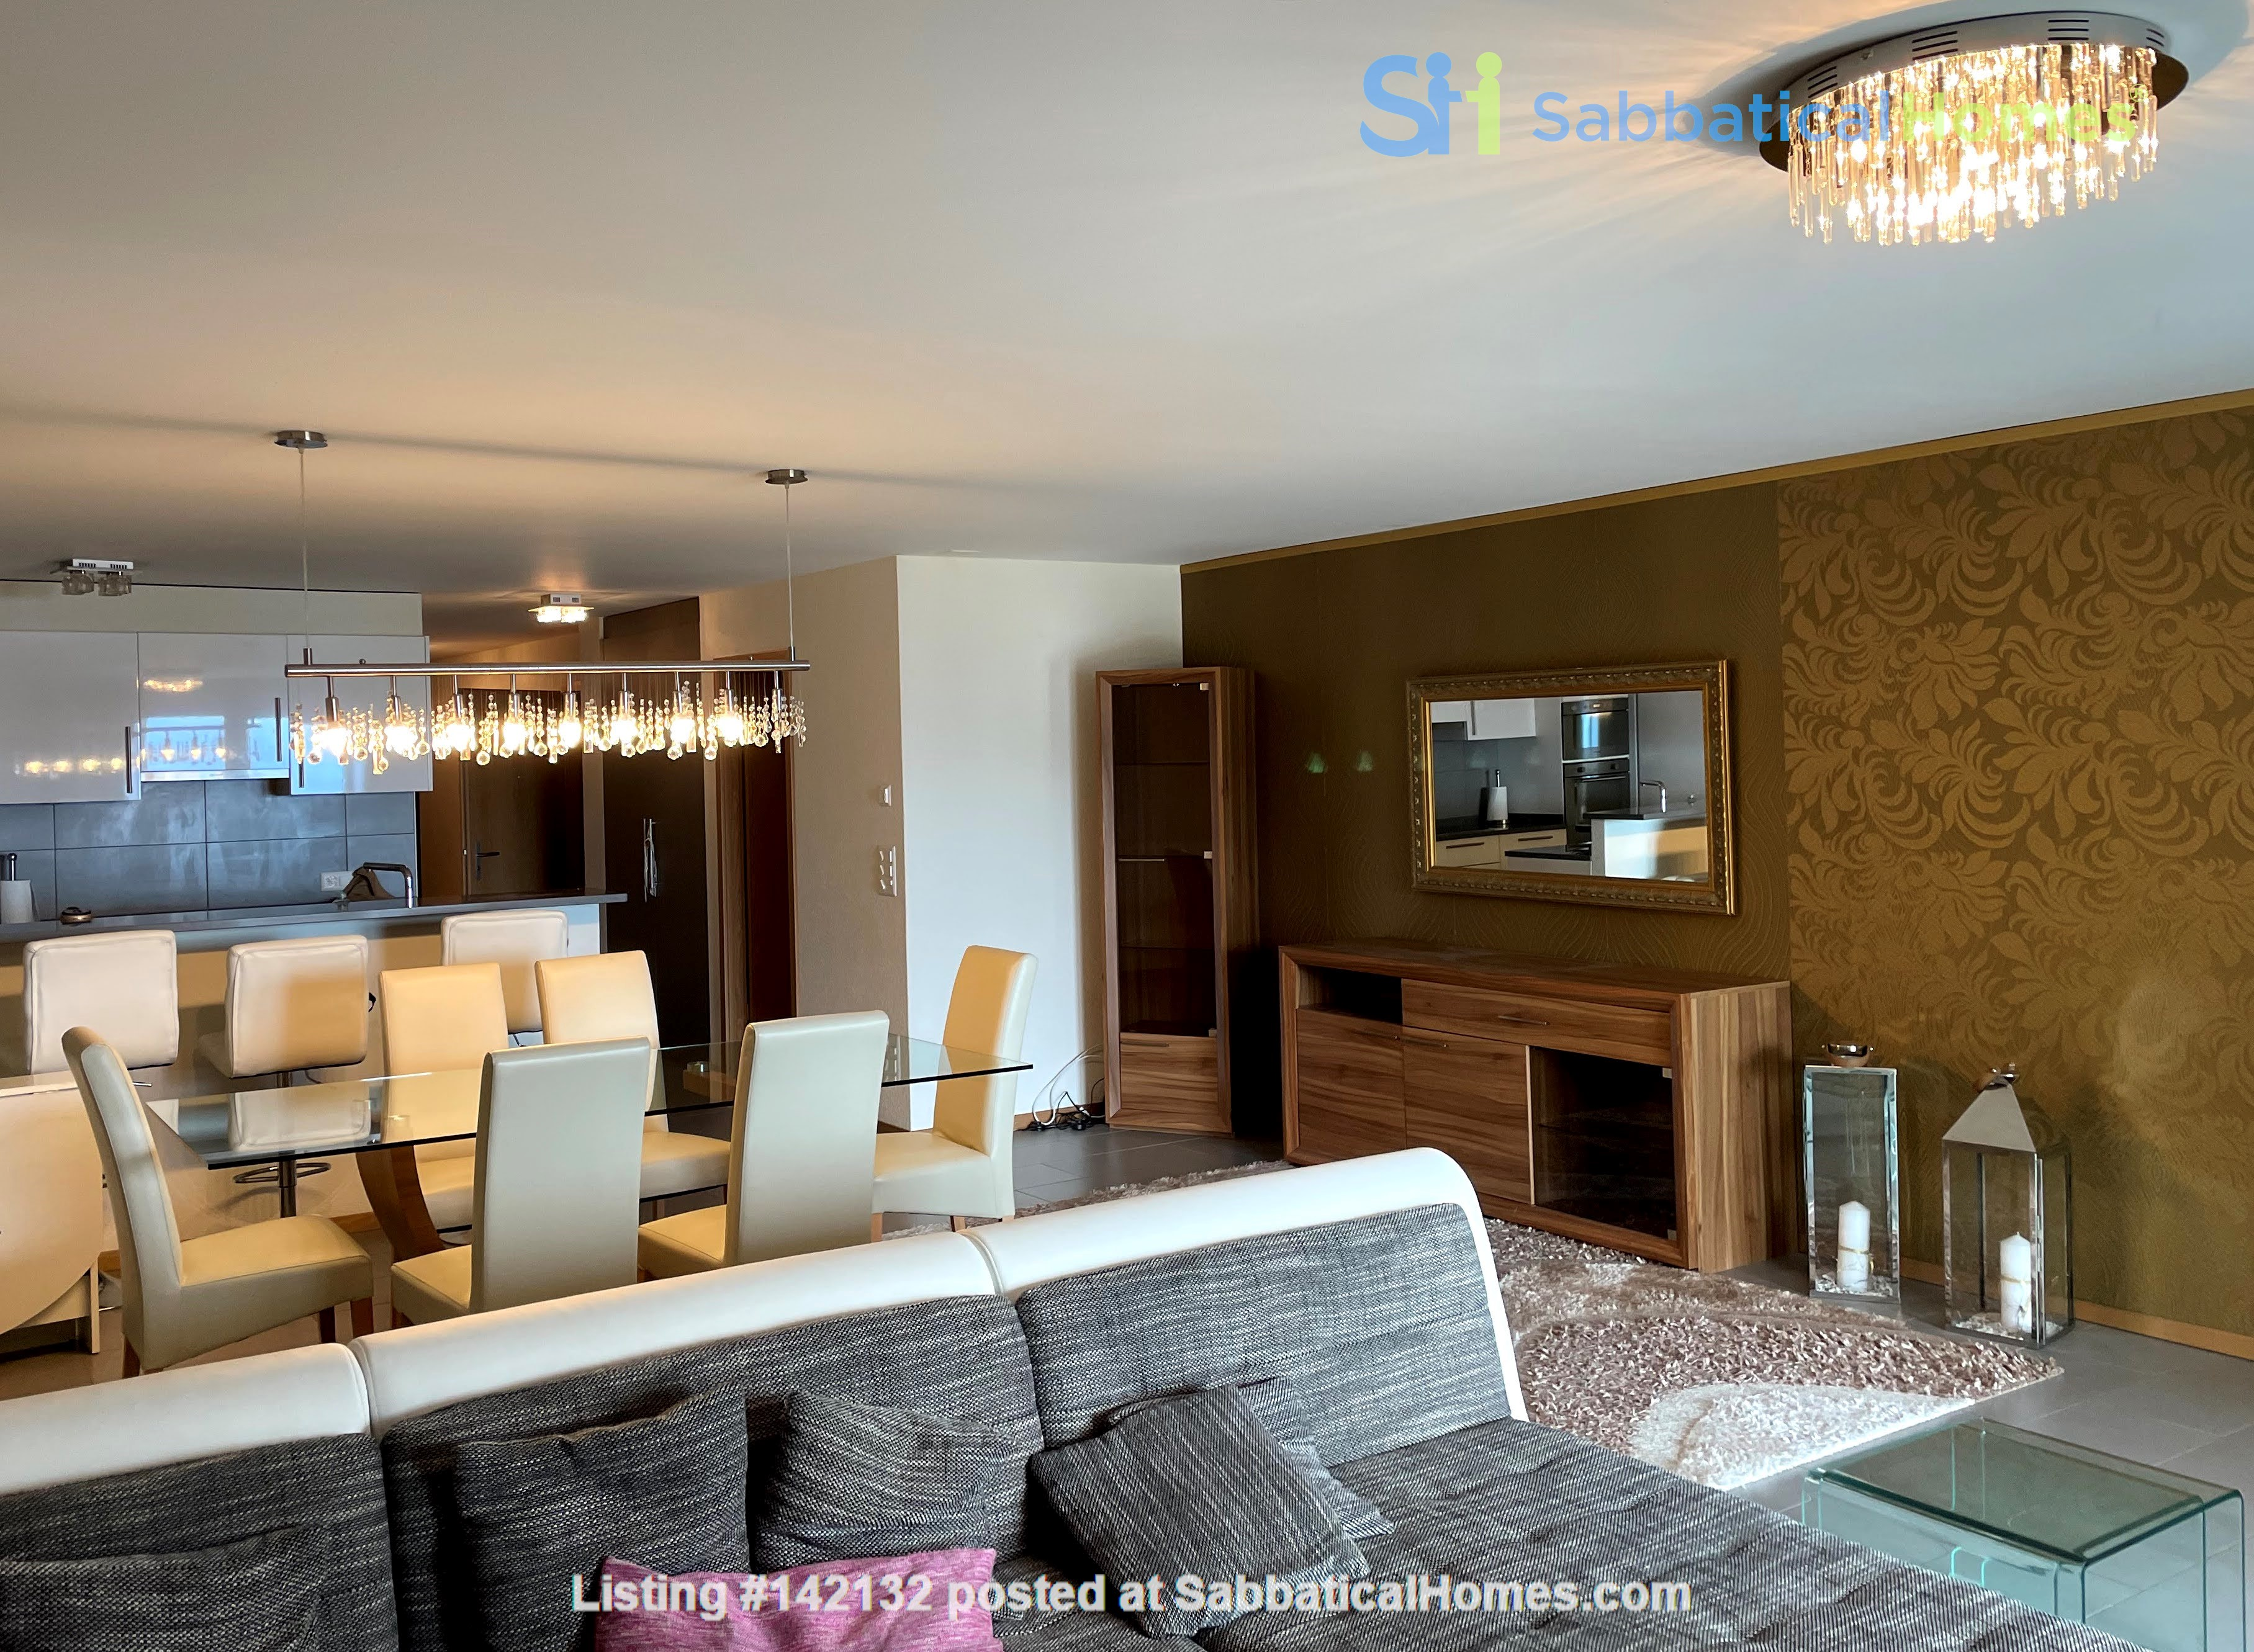 Furnished upscale flat for rent with 3 bedrooms and amazing view near Vevey Home Rental in Chardonne, Vaud, Switzerland 3